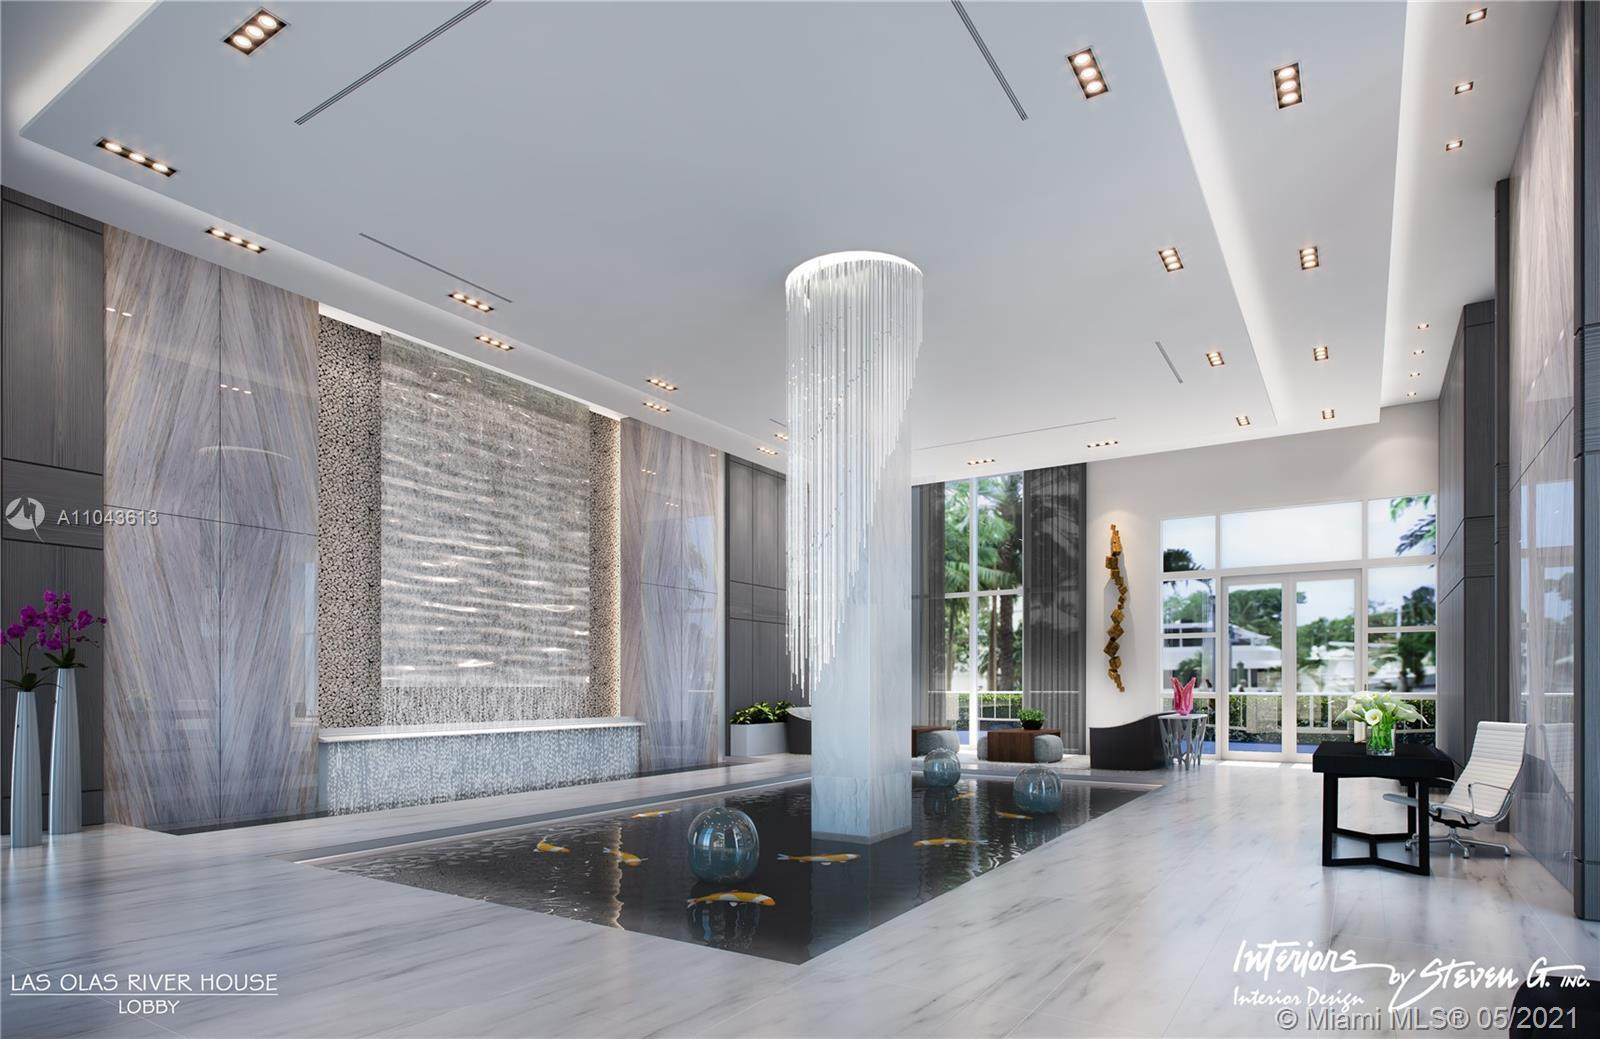 Unique Soho condo in iconic Las Olas River House.  This 1161 sq ft condo was built out as a large on